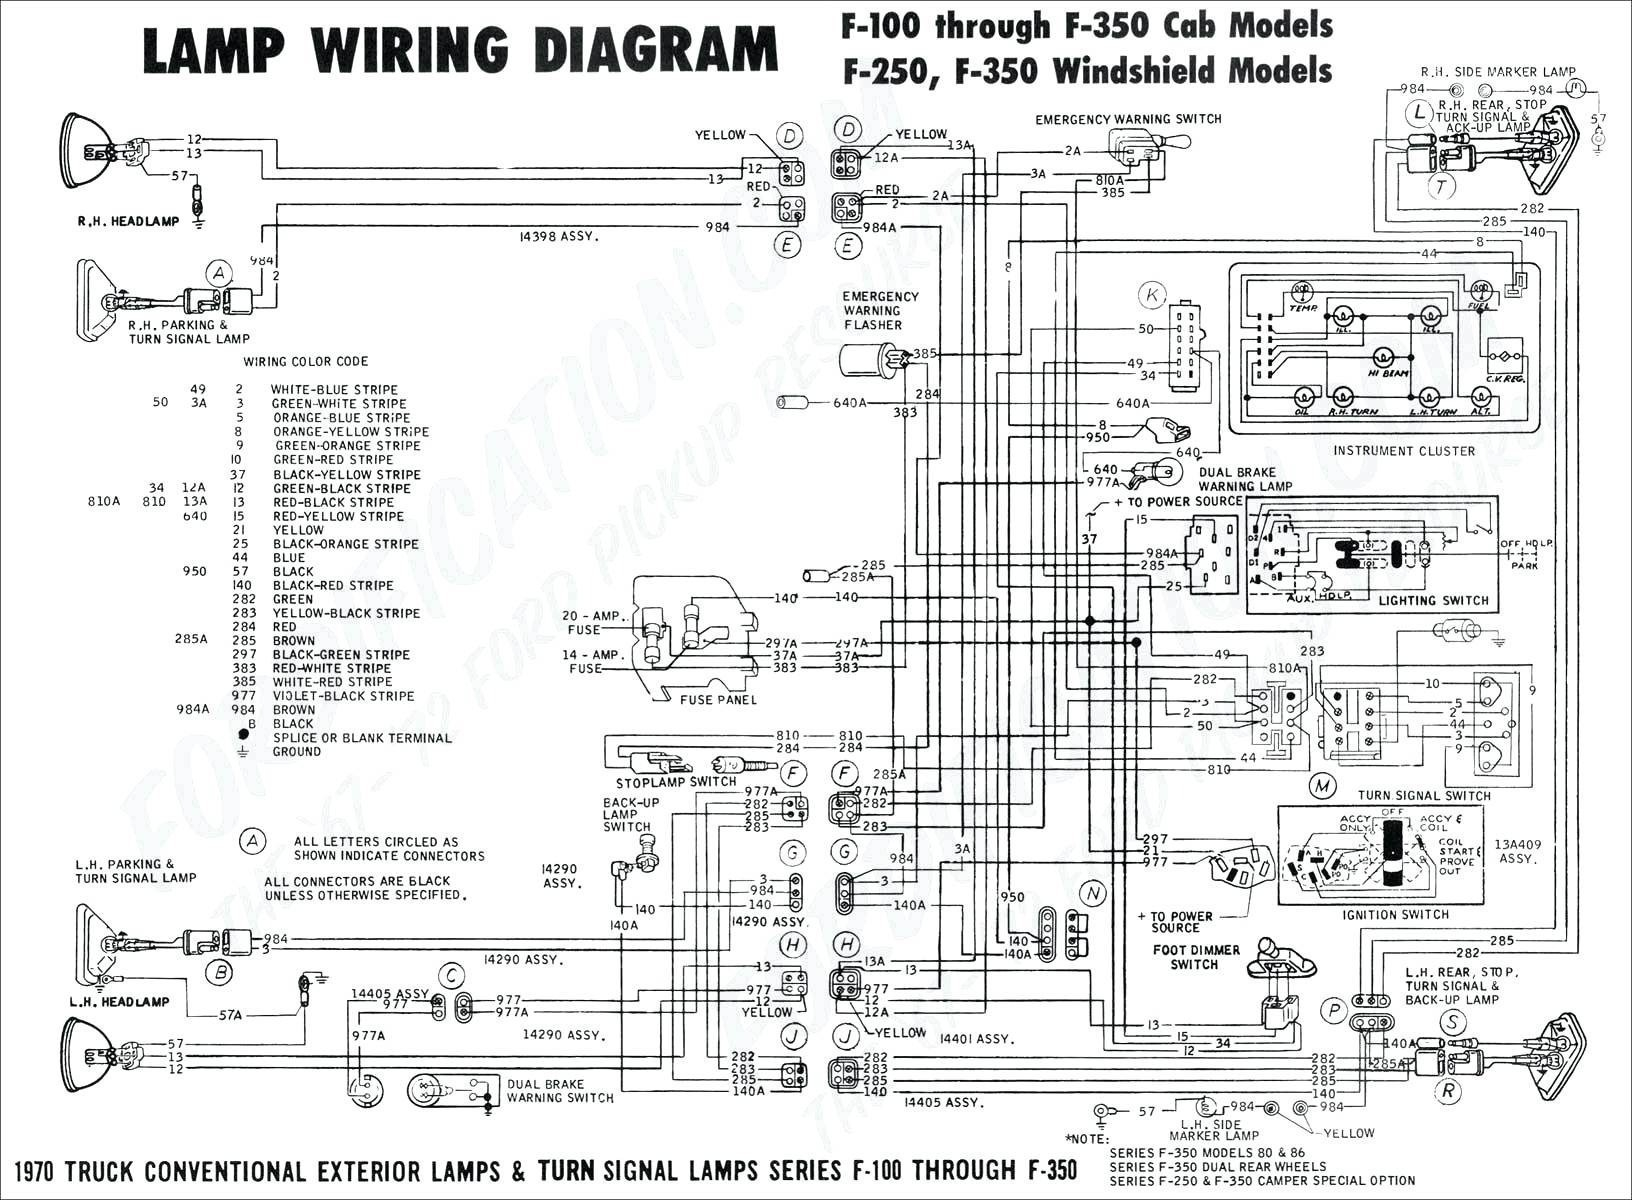 2010 corolla wiring diagram free download schematic wiring diagram